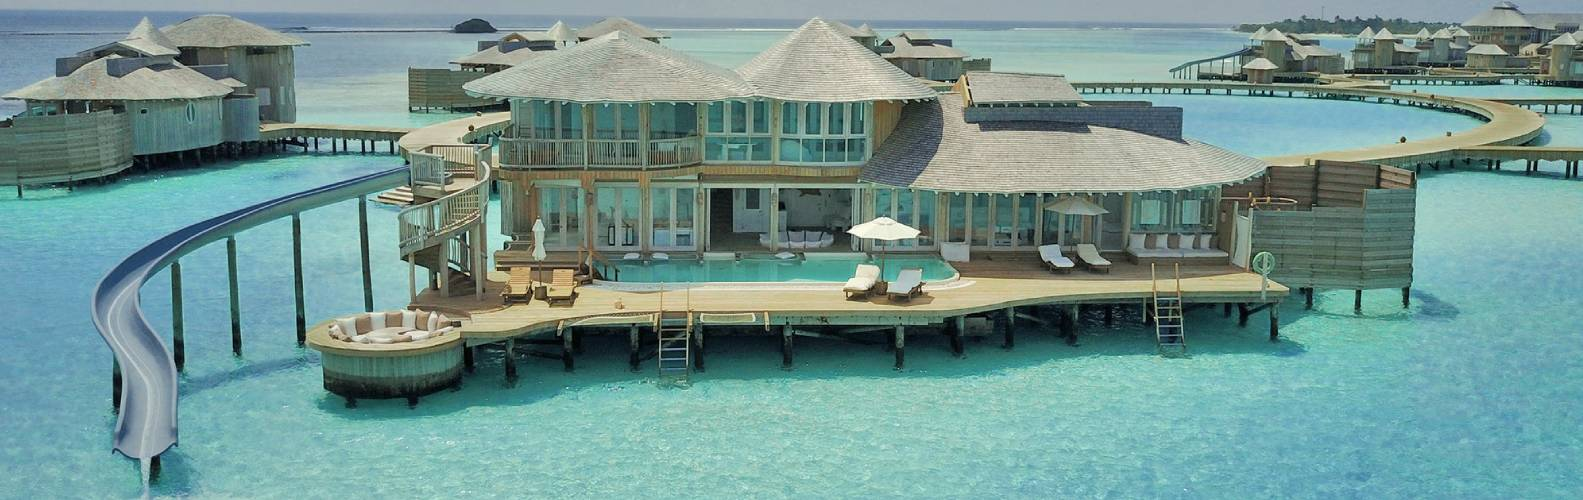 Soneva Jani Maldives - 3 Bedroom Water Reserve with Slide